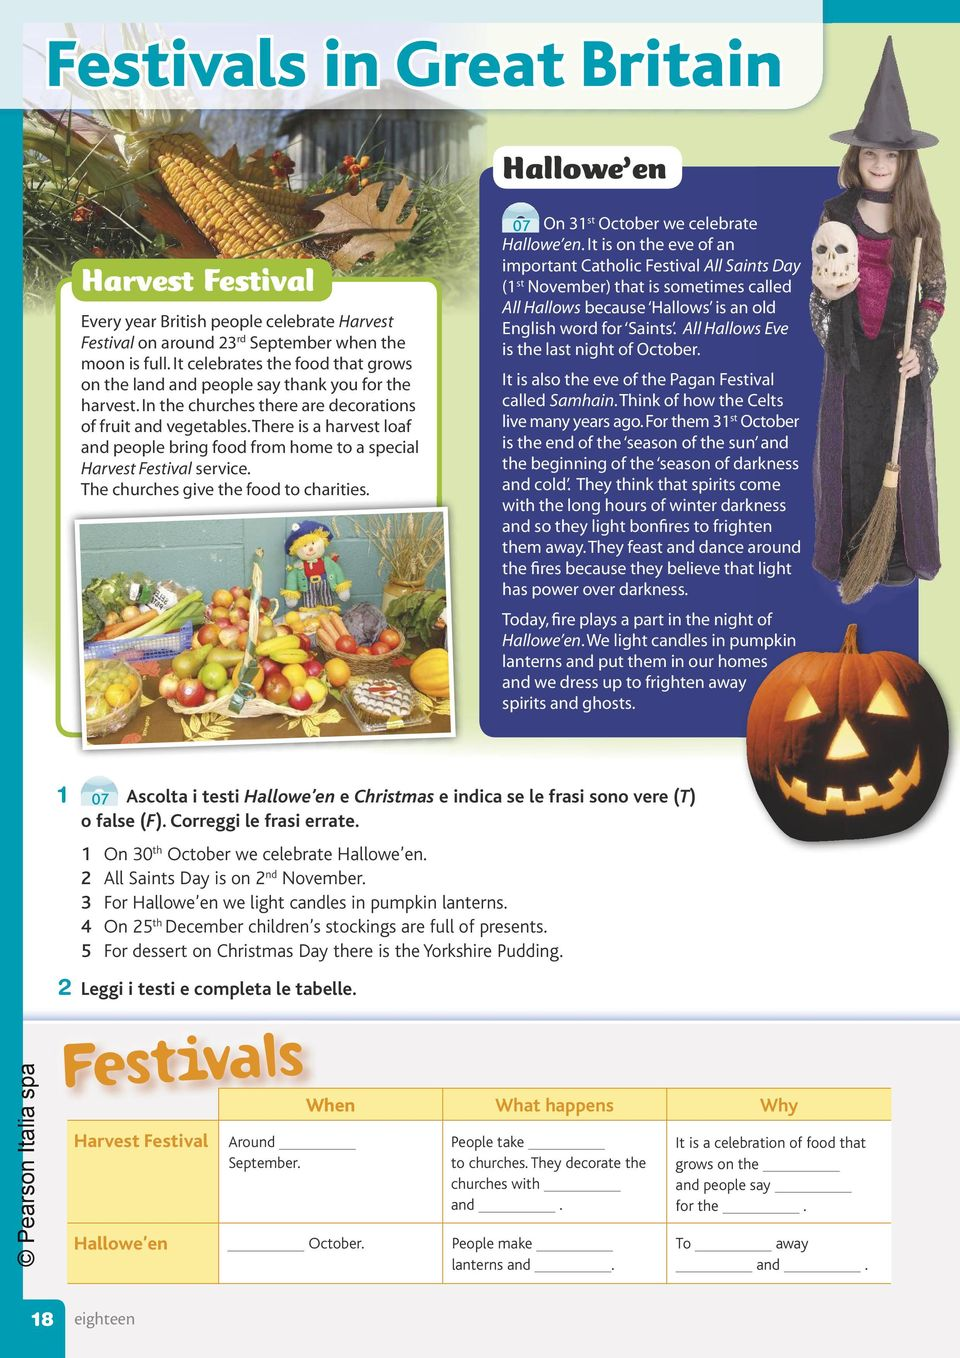 There is a harvest loaf and people bring food from home to a special Harvest Festival service. The churches give the food to charities. 07 On 31 st October we celebrate e Hallowe en.